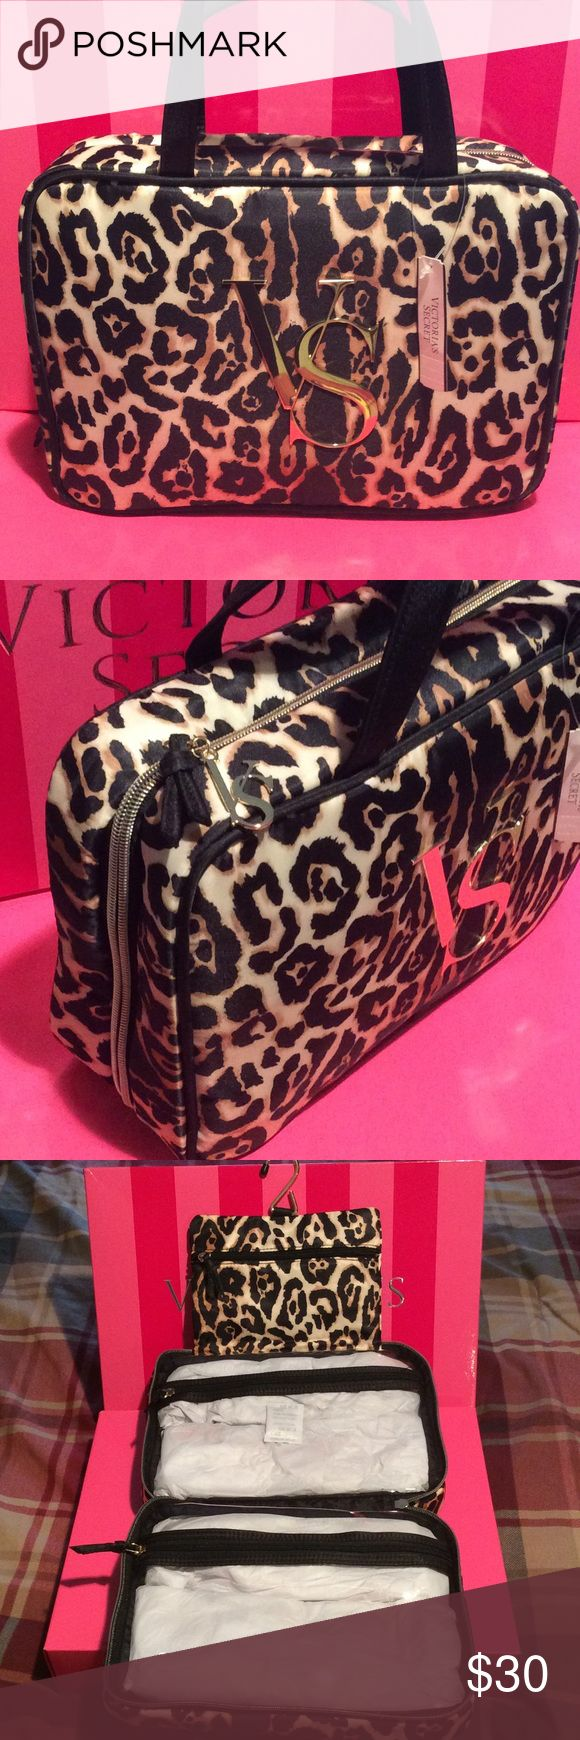 Victoria's Secret Beauty Hanging Bag New with tag. Leopard print hanging Beauty bag. Great for traveling! Victoria's Secret Bags